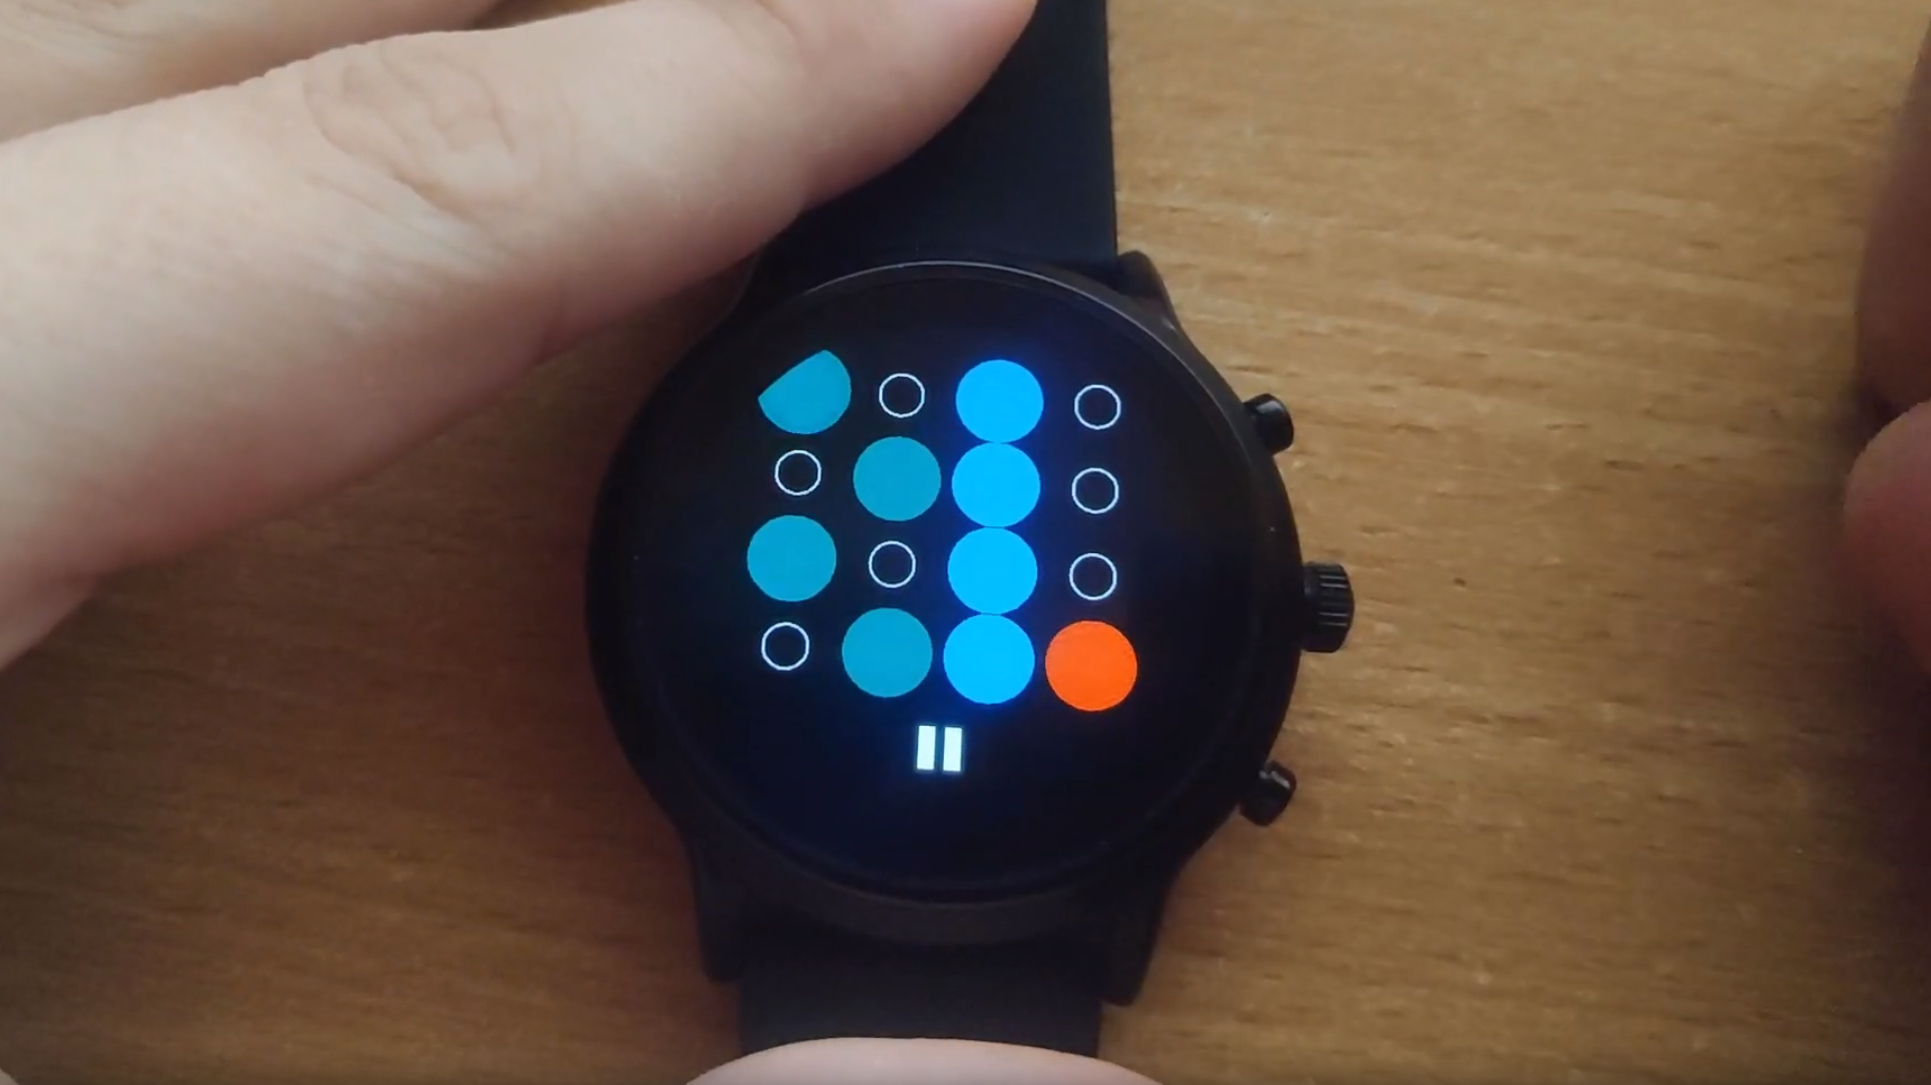 How To Enable The Hidden Drum Sequencer Bonus Feature In Wear OS